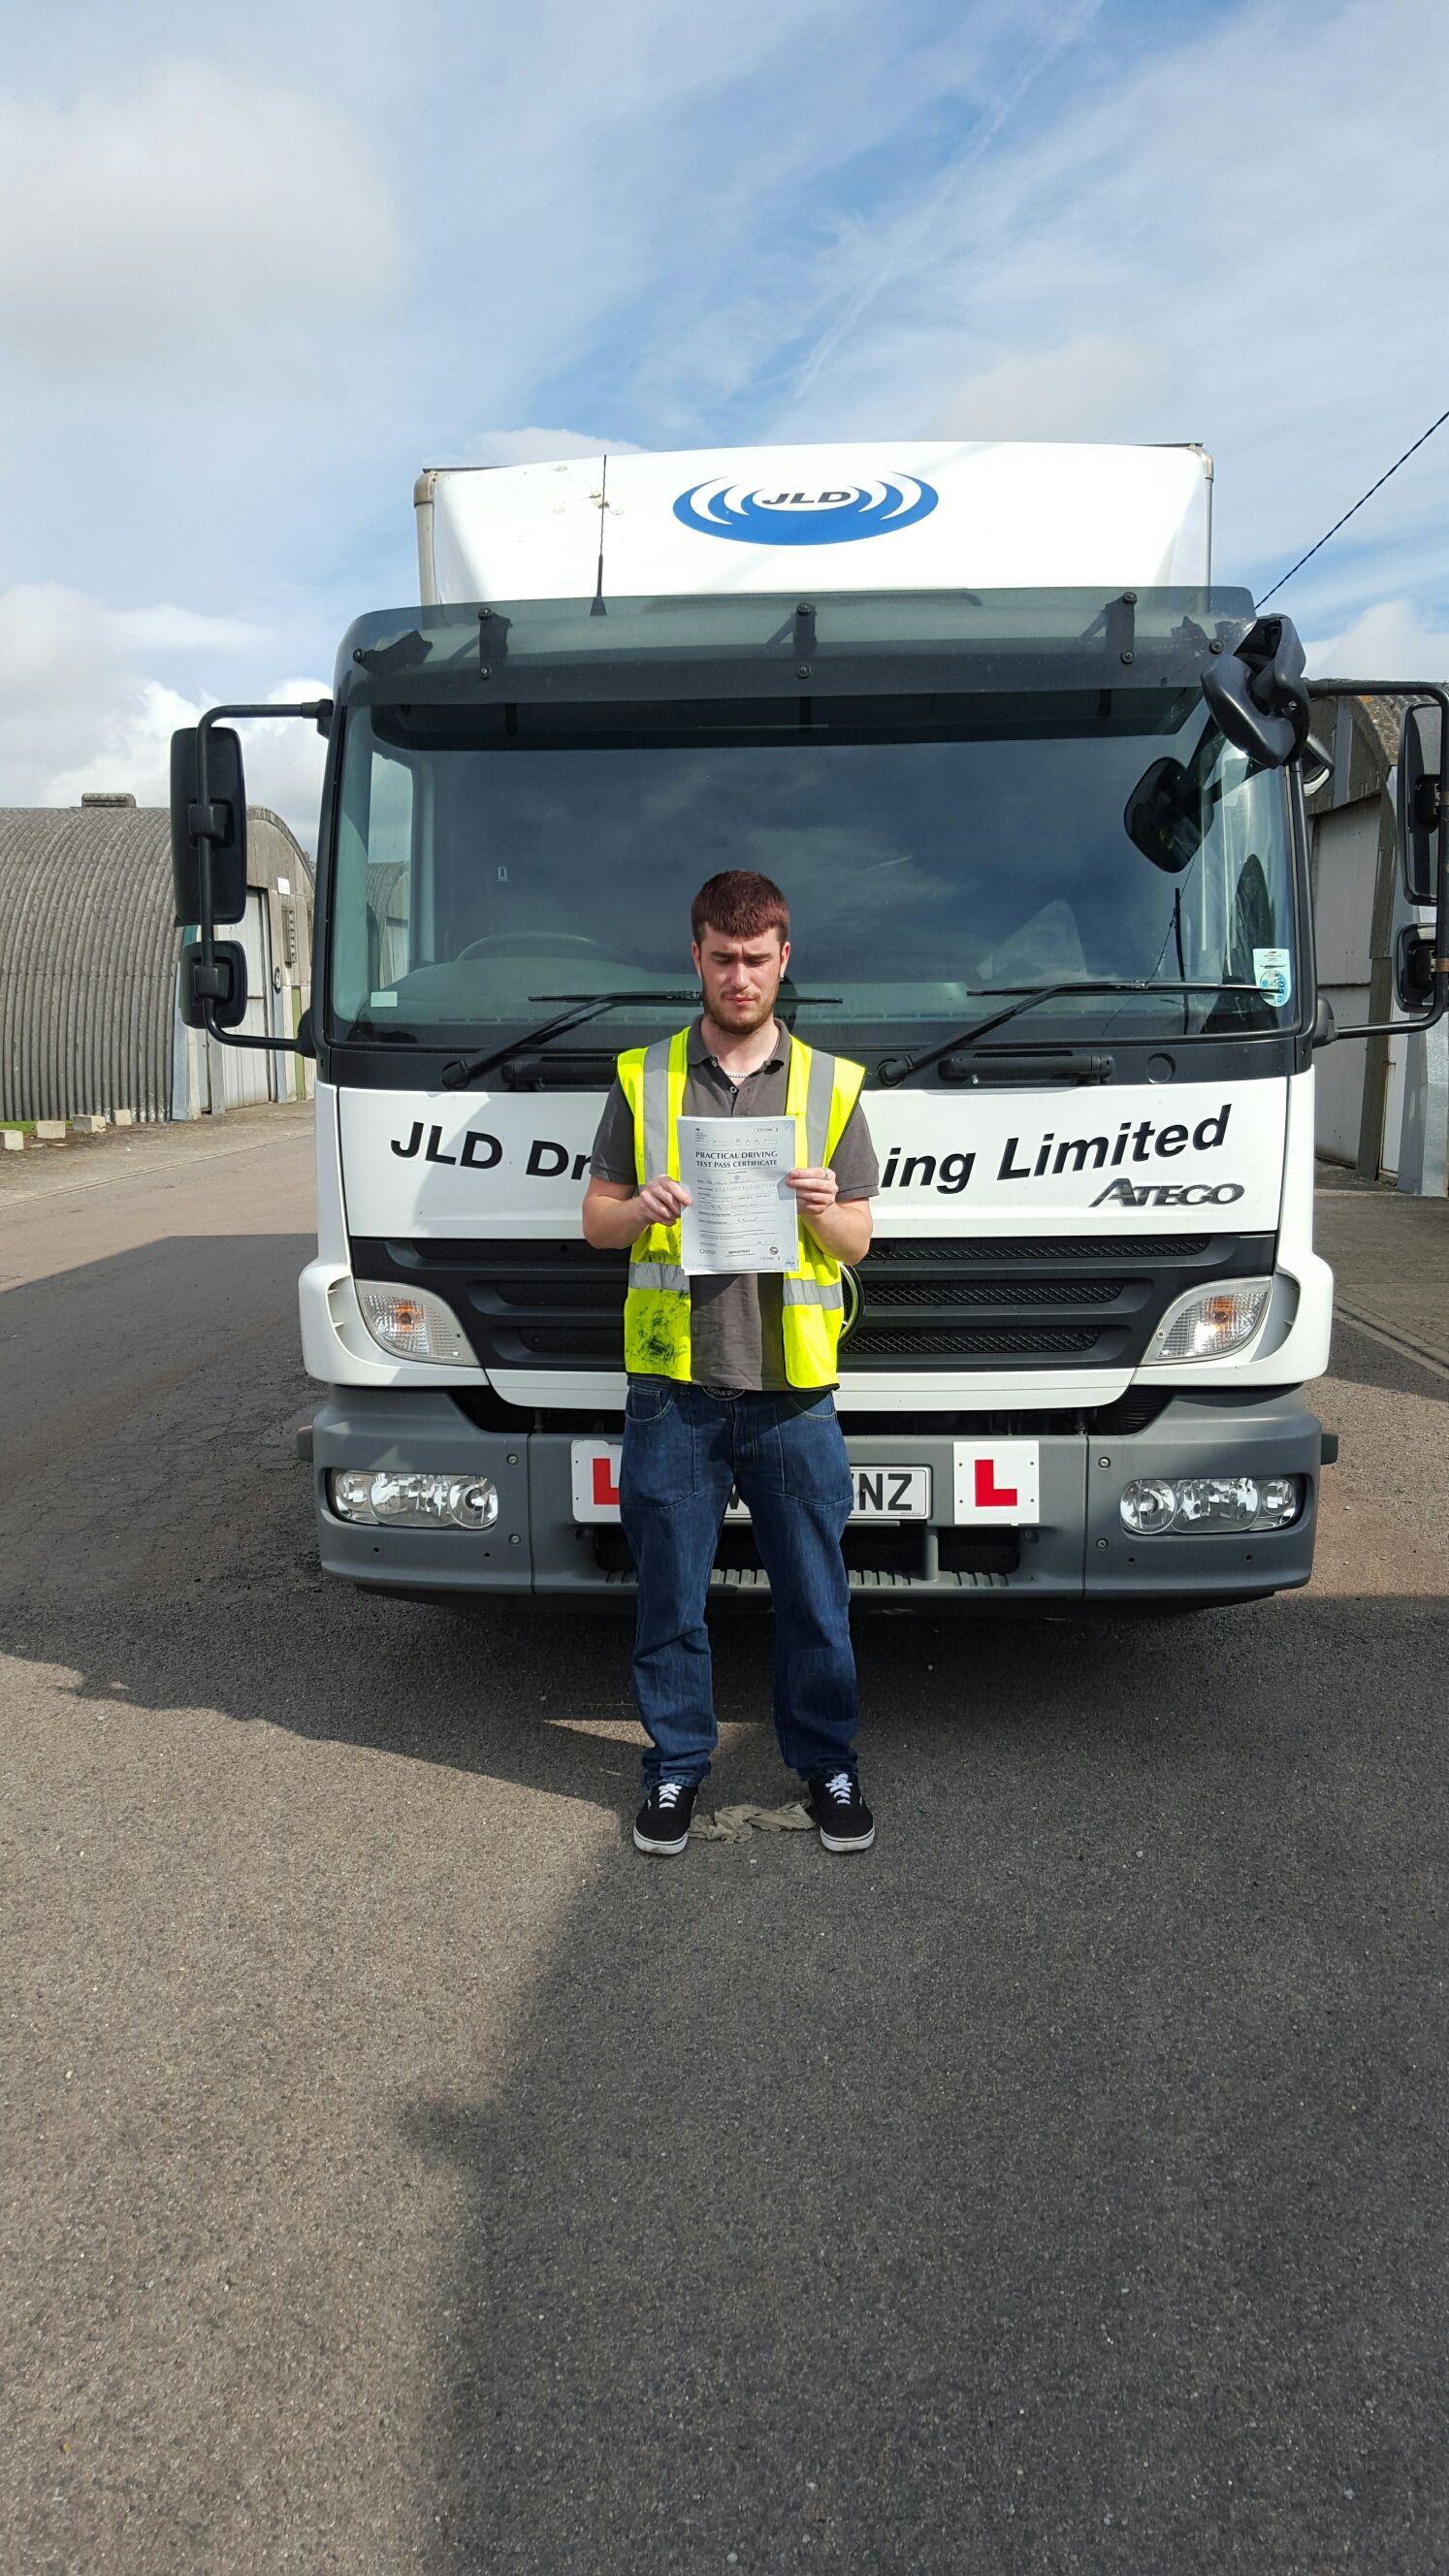 Another pass at JLD, congratulations